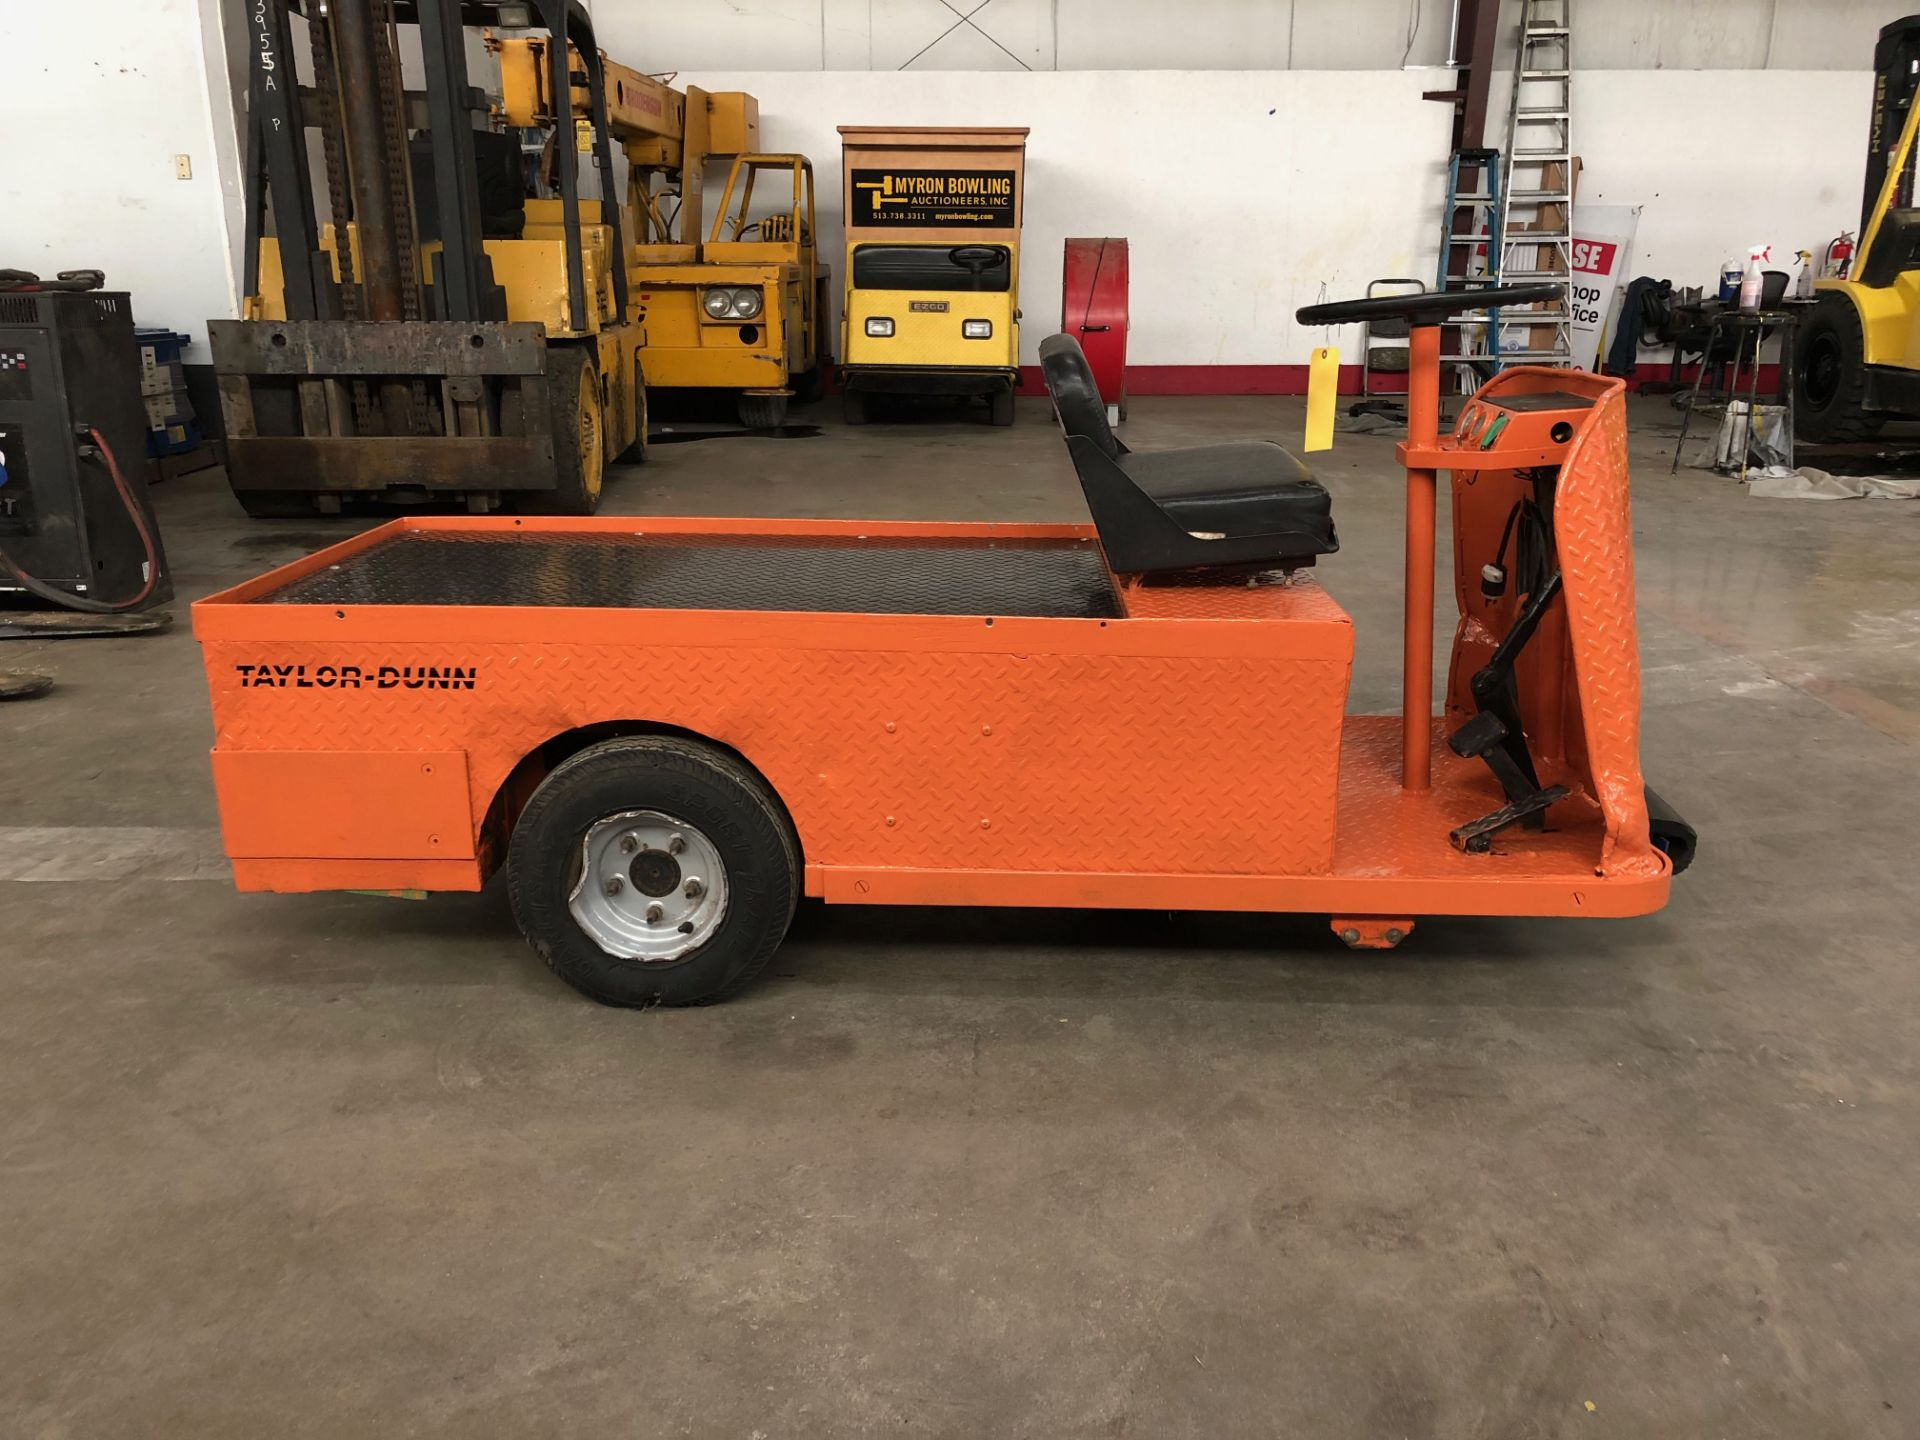 Lot 26B - 2007 TAYLOR-DUNN 3-WHEEL ELECTRIC PERSONNEL CART, MODEL: C0-014-32, WITH 24-VOLT, 450-LB. CAPACITY